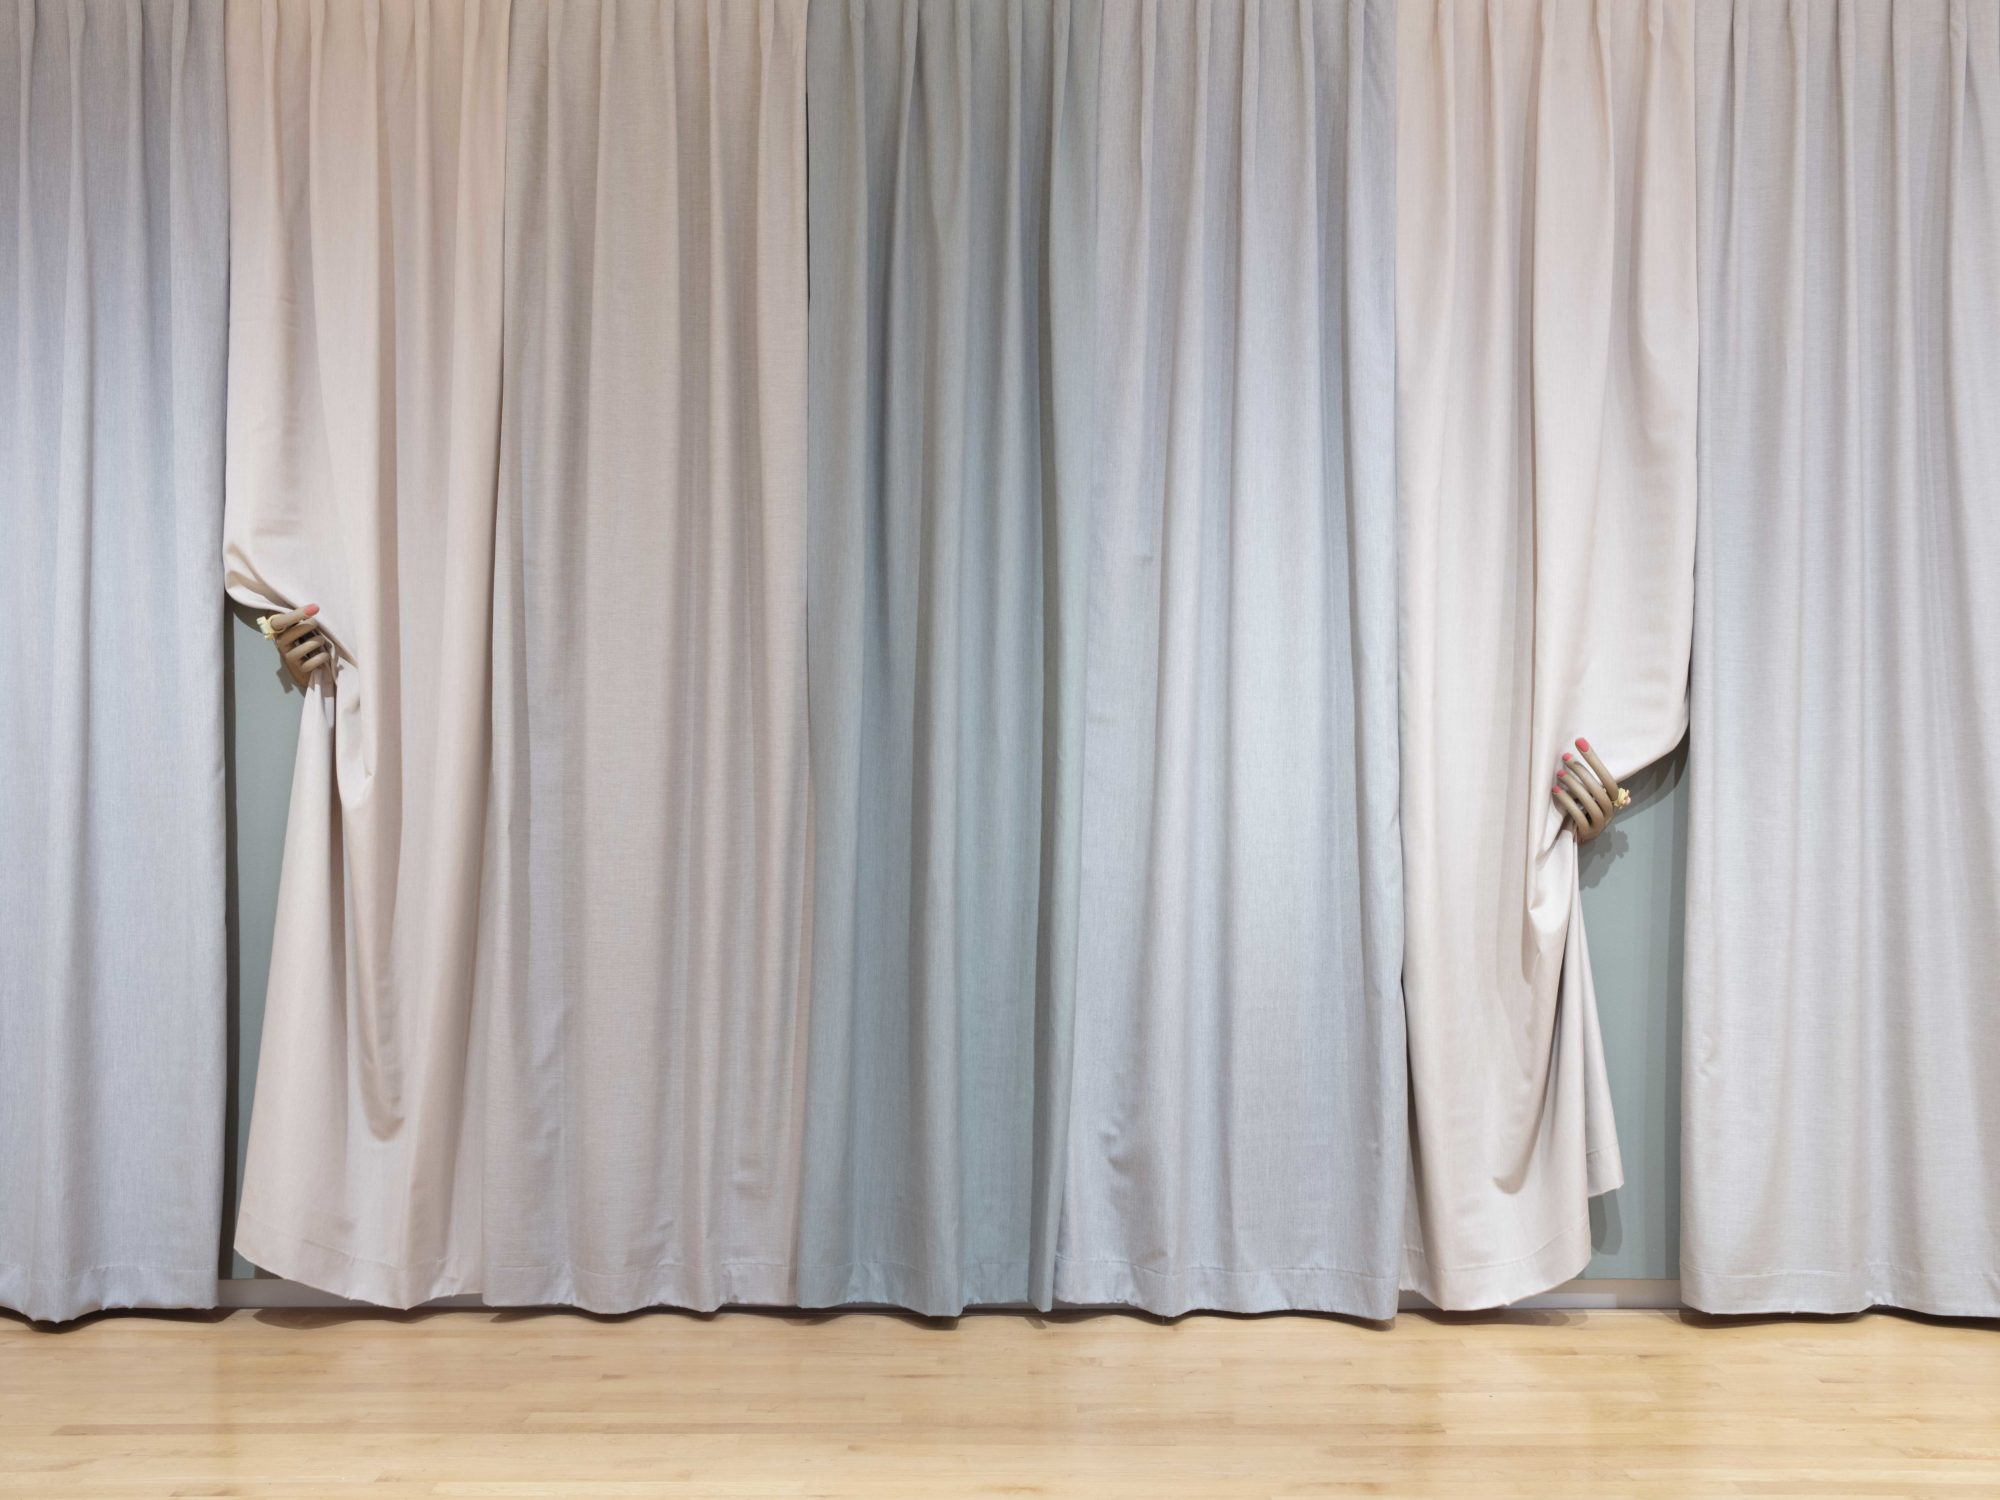 Pastel multi-colored curtain panels with two manicured hands pulling back two pieces of fabric.